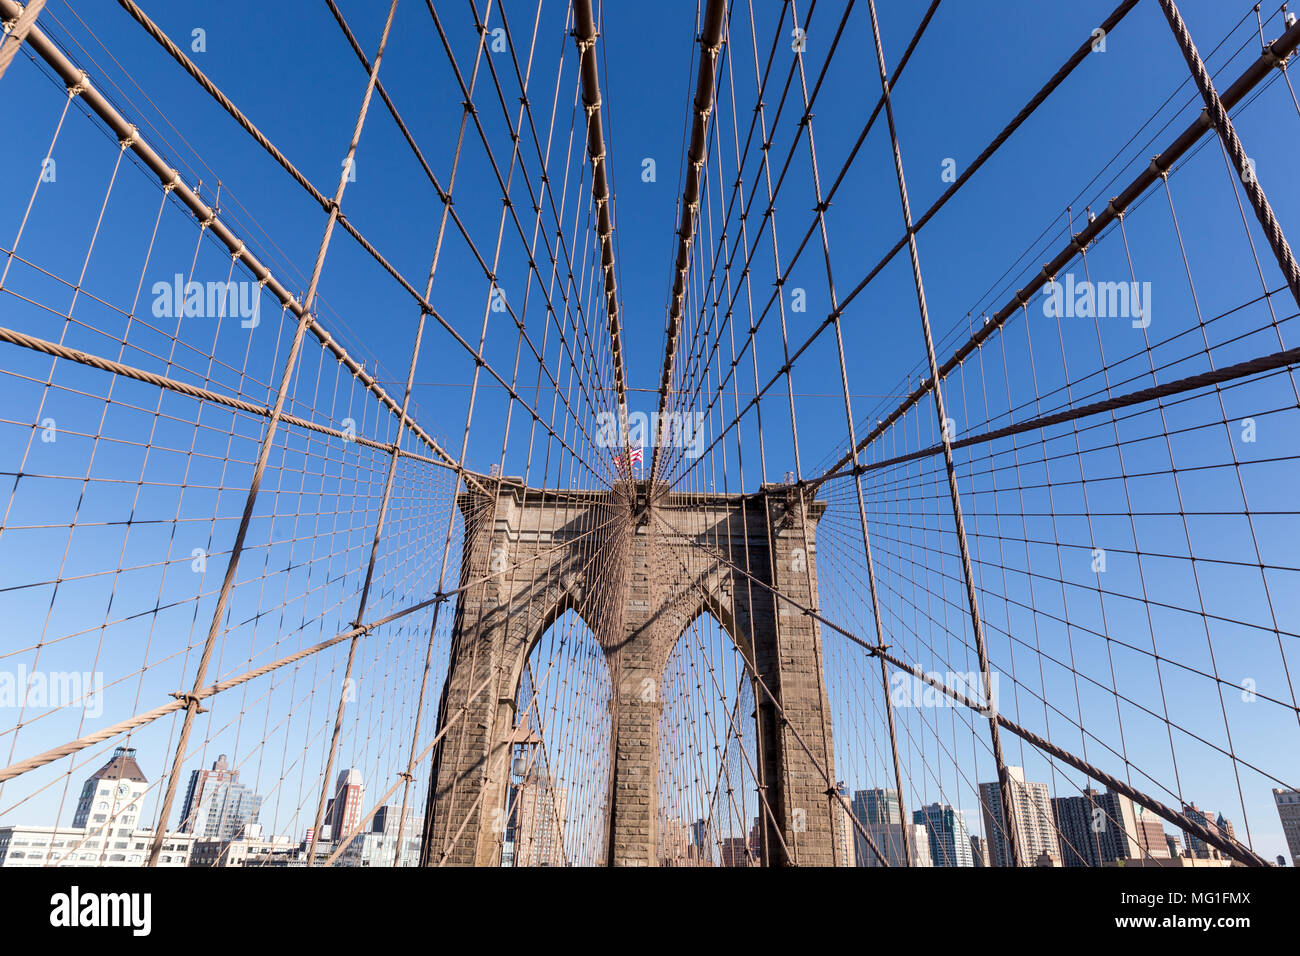 Brooklyn Bridge Tower and cables Stock Photo